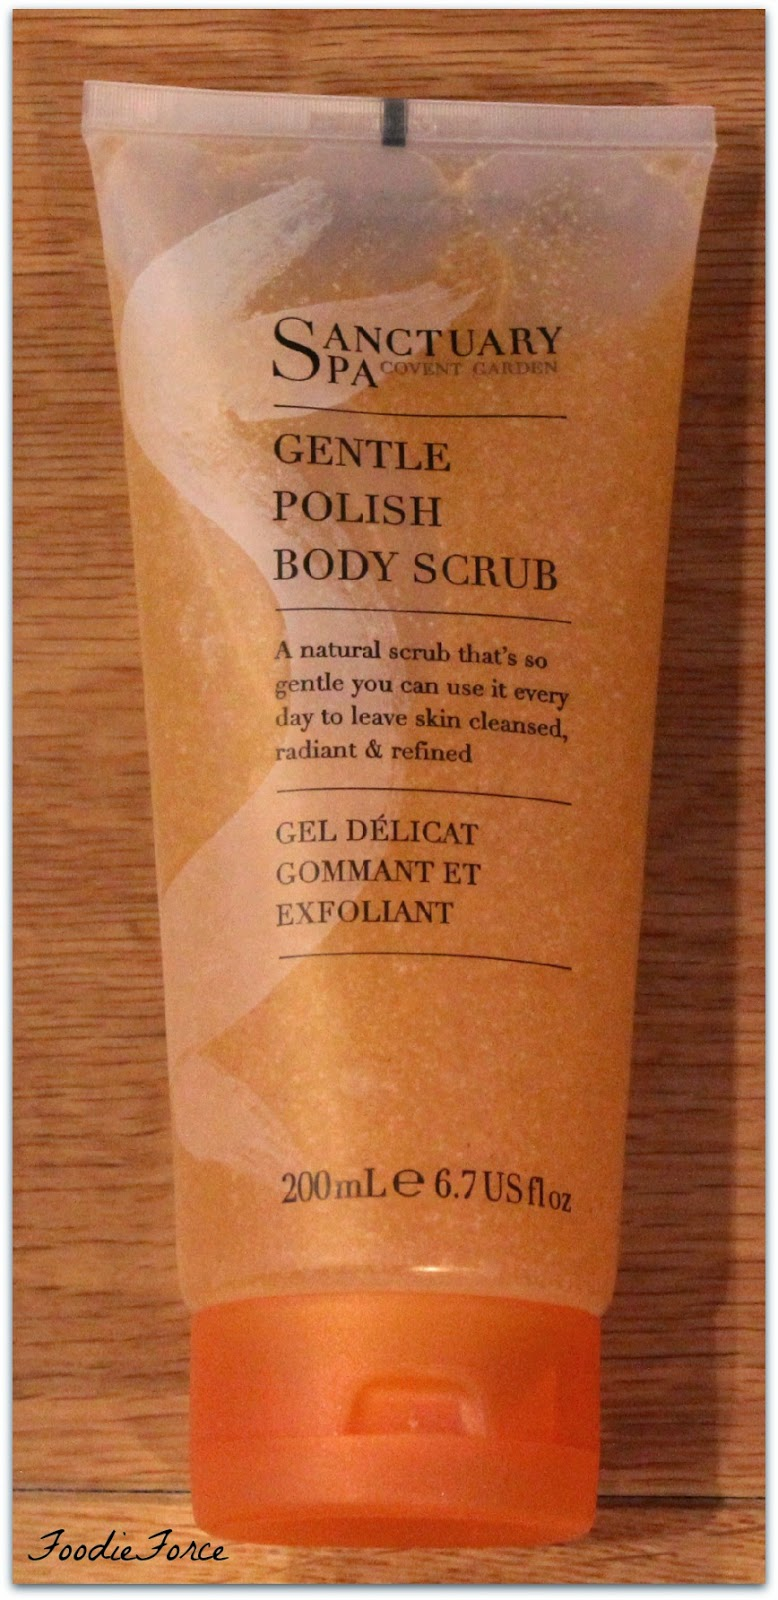 Sanctuary Gentle Polish body scrub